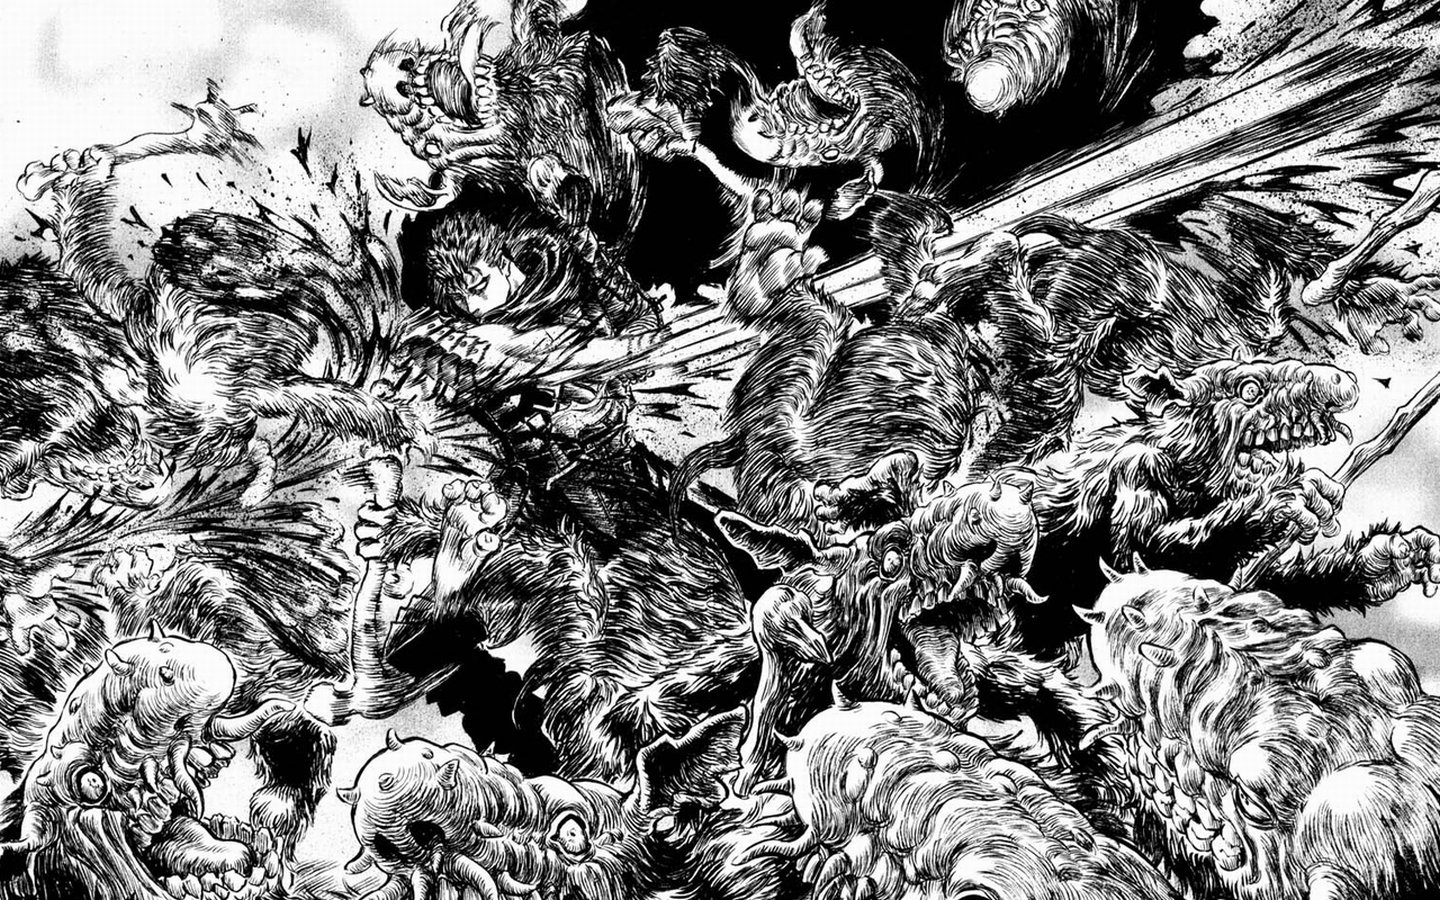 Free download Berserk wallpaper ID:67881 hd 1440x900 for desktop